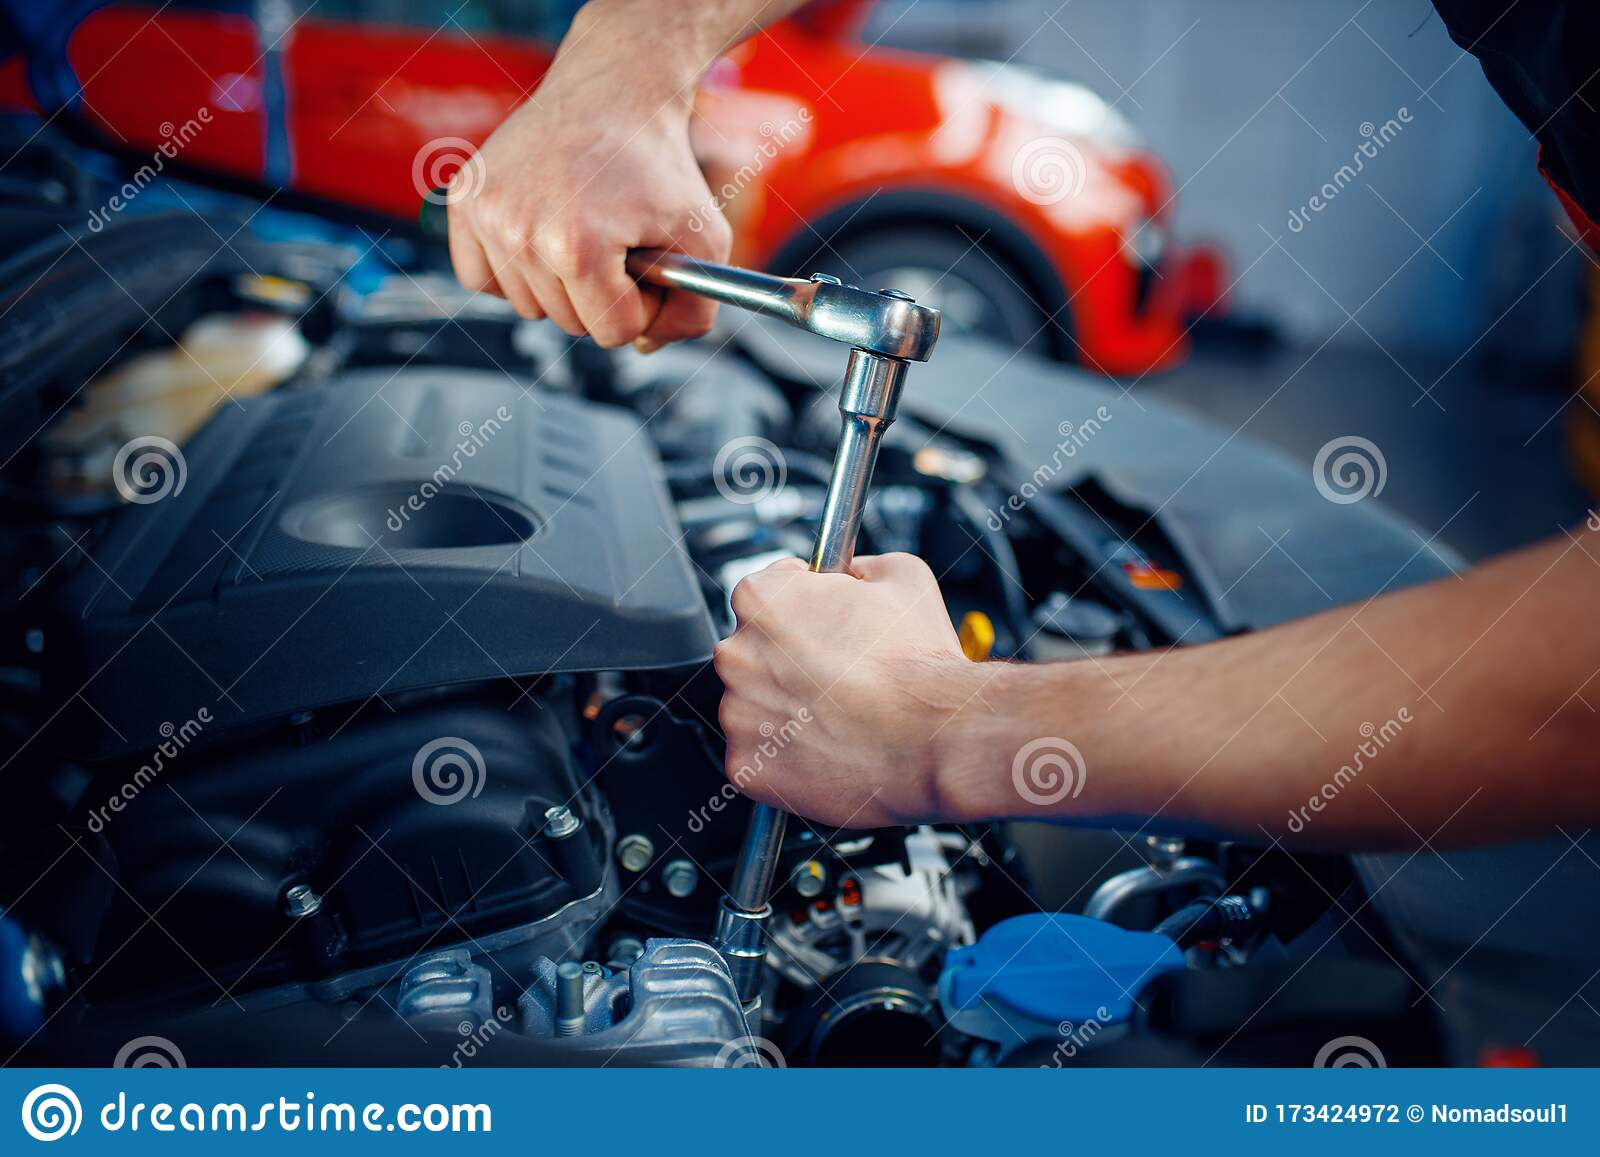 243 462 Car Service Photos Free Royalty Free Stock Photos From Dreamstime